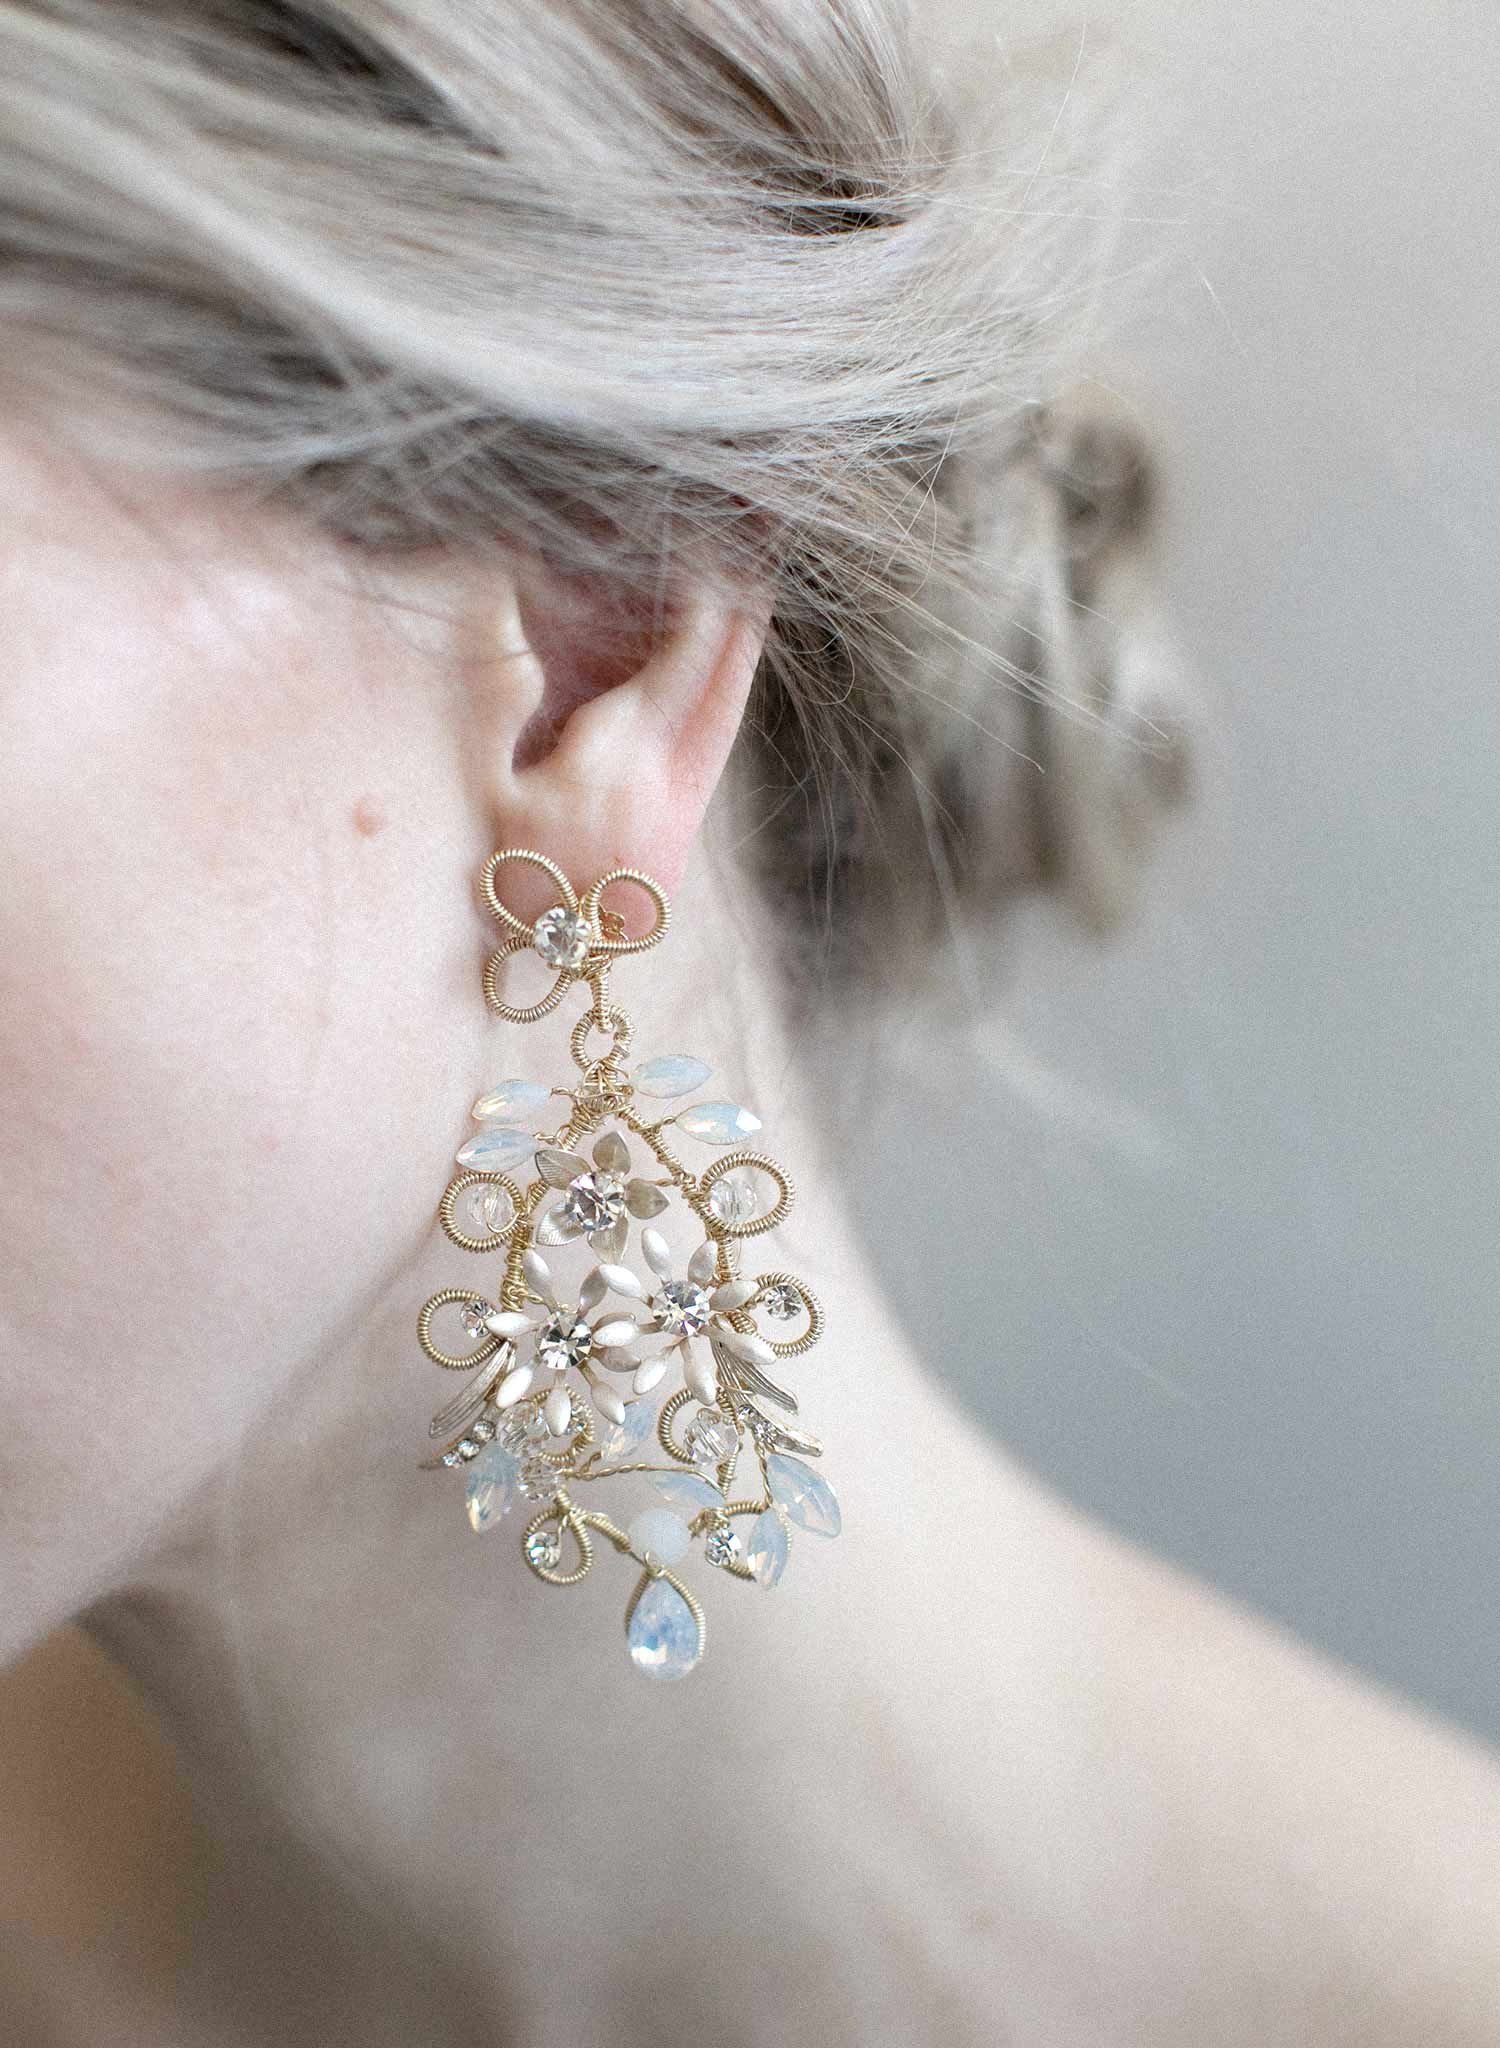 Mermaid's chandelier earrings - Style #911